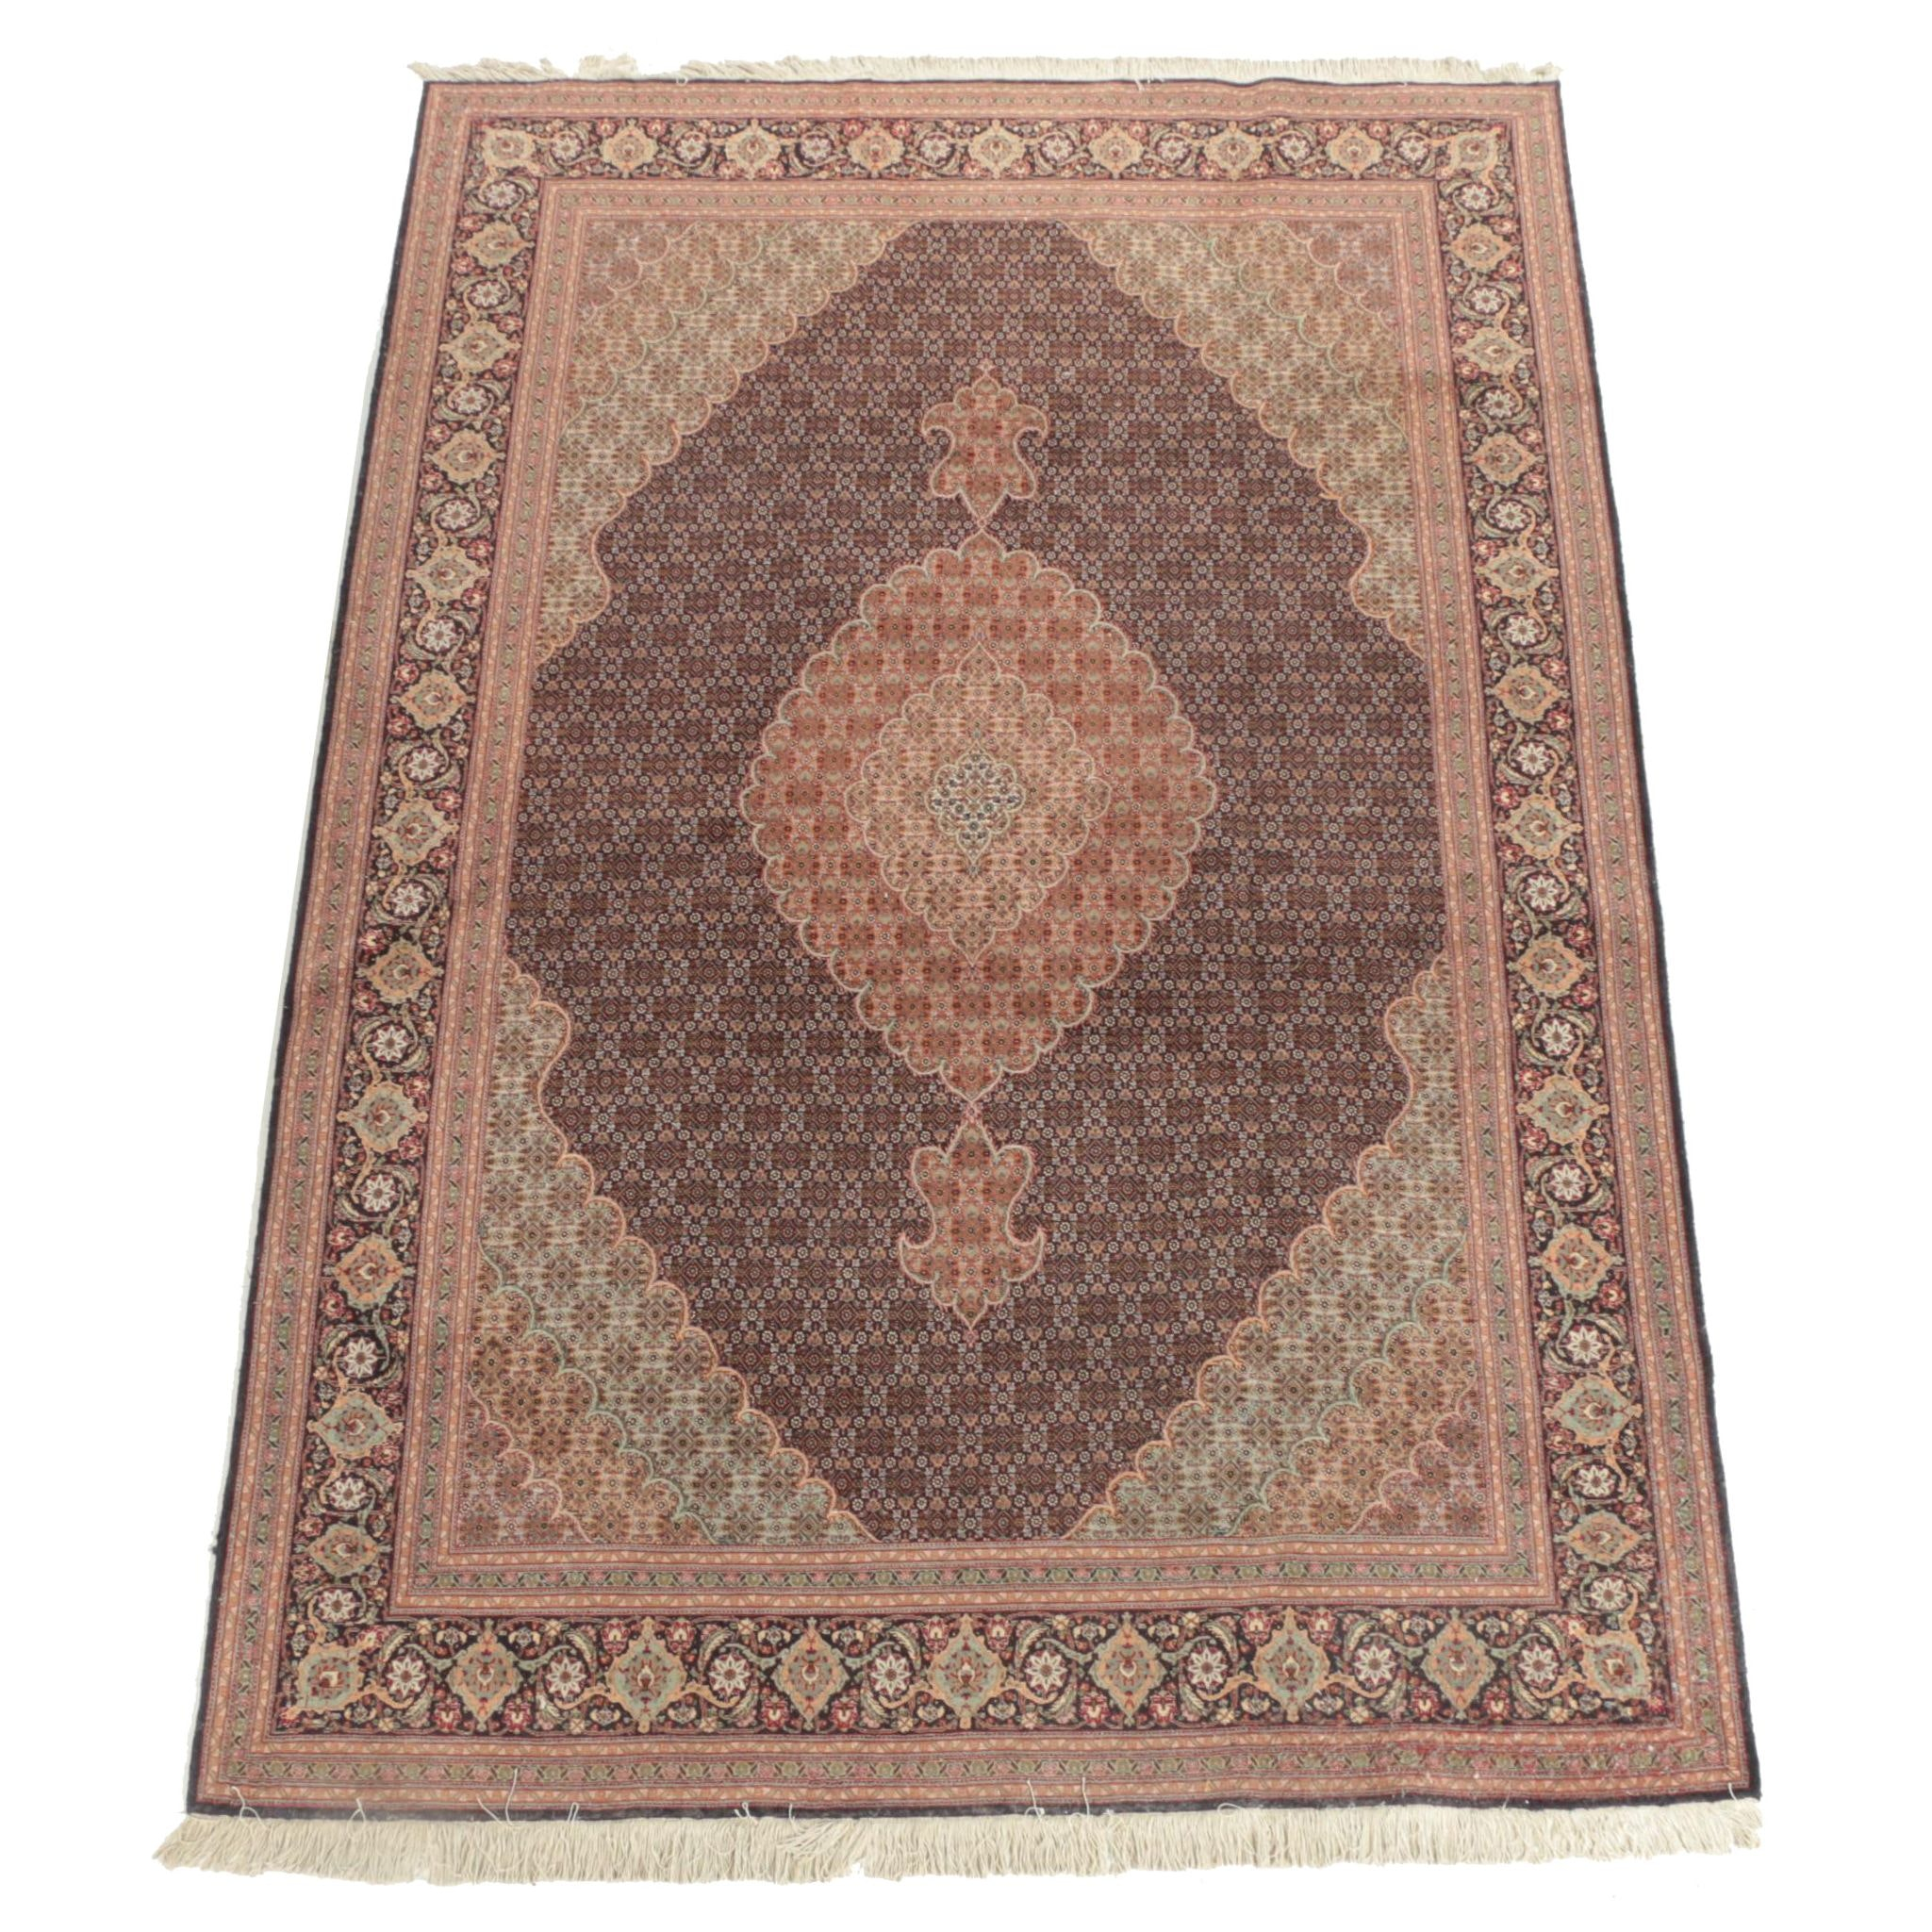 Finely Hand-Knotted Persian Mahi Tabriz Wool Area Rug